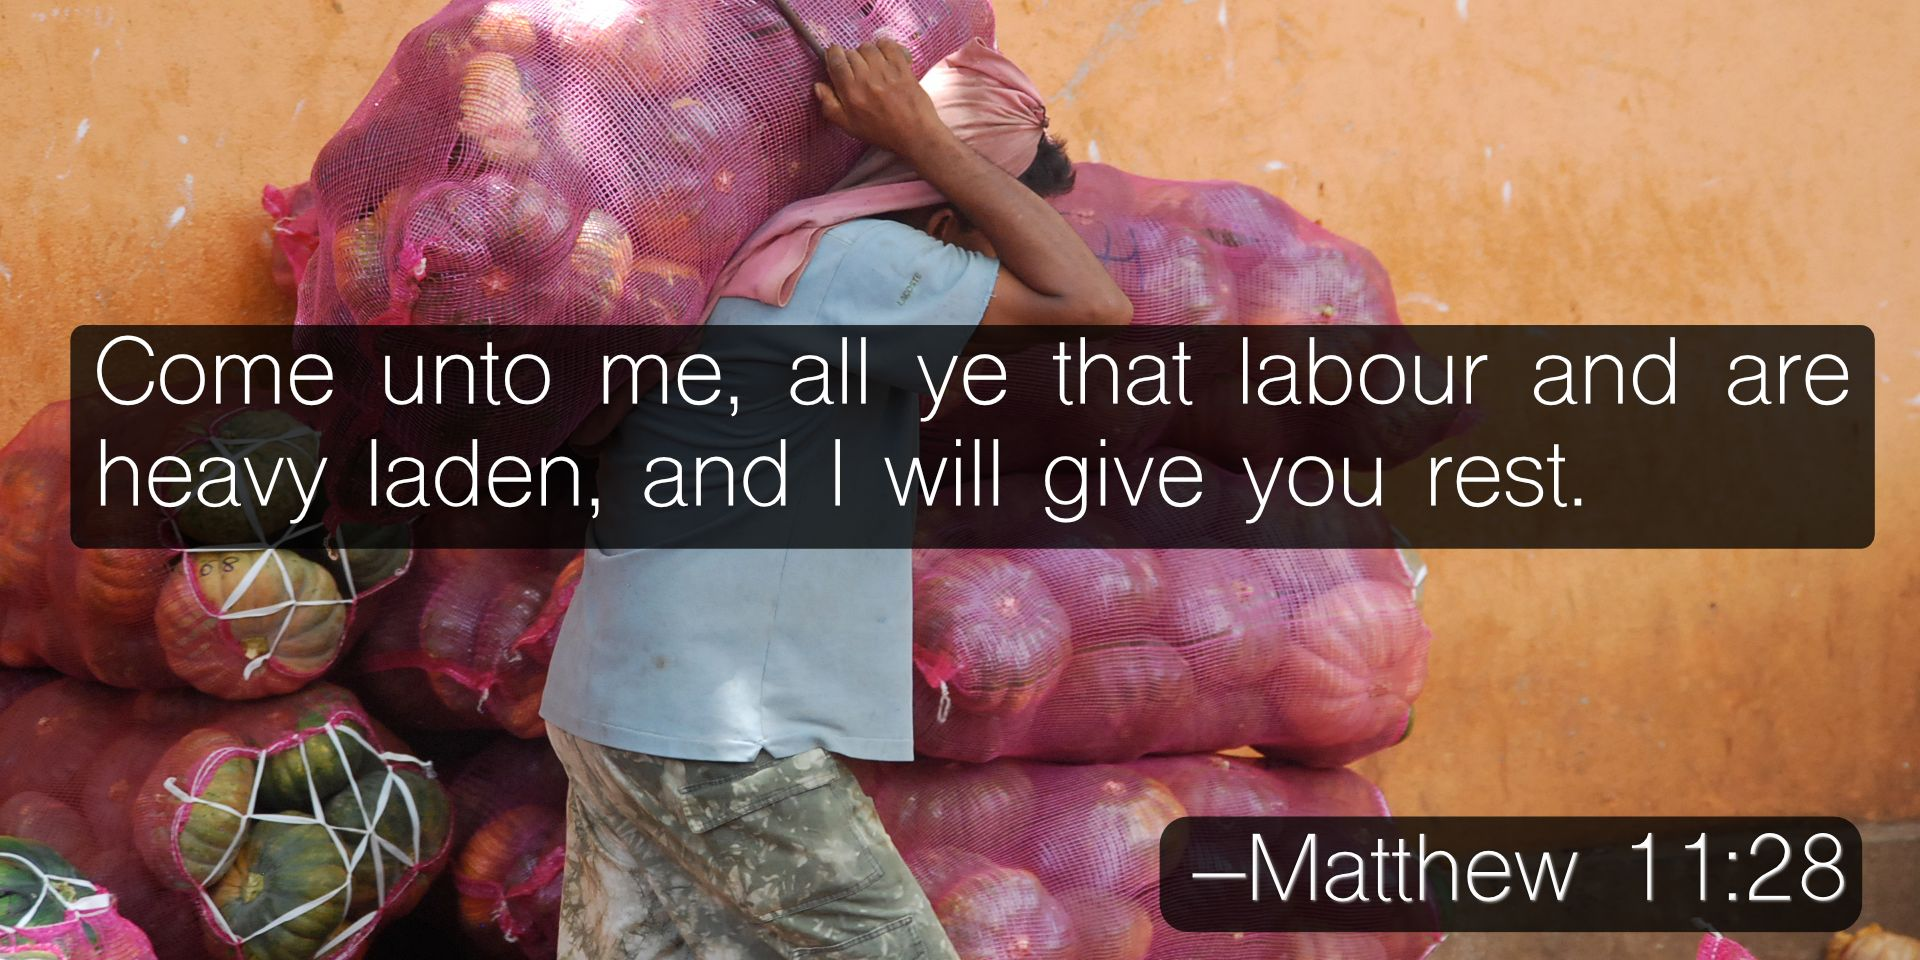 Come unto me, all ye that labour and are heavy laden, and I will give you rest. –Matthew 11:28